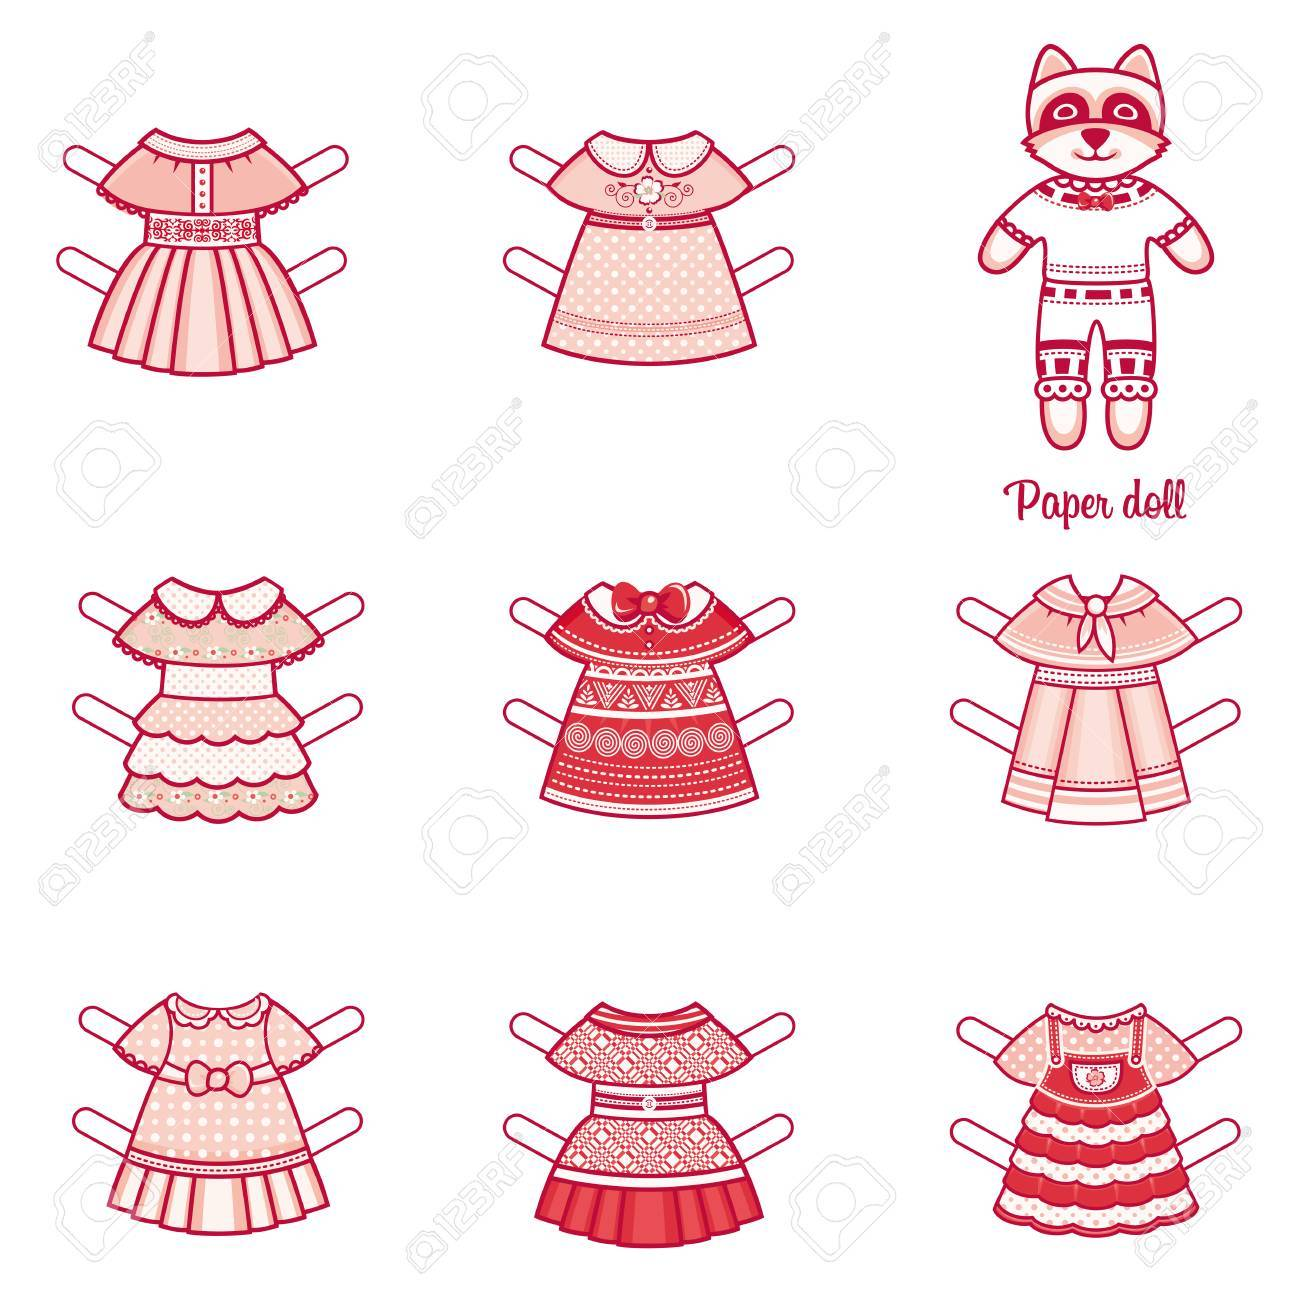 Paper Doll With A Set Of Fashion Clothes. Raccoon. Template For ...